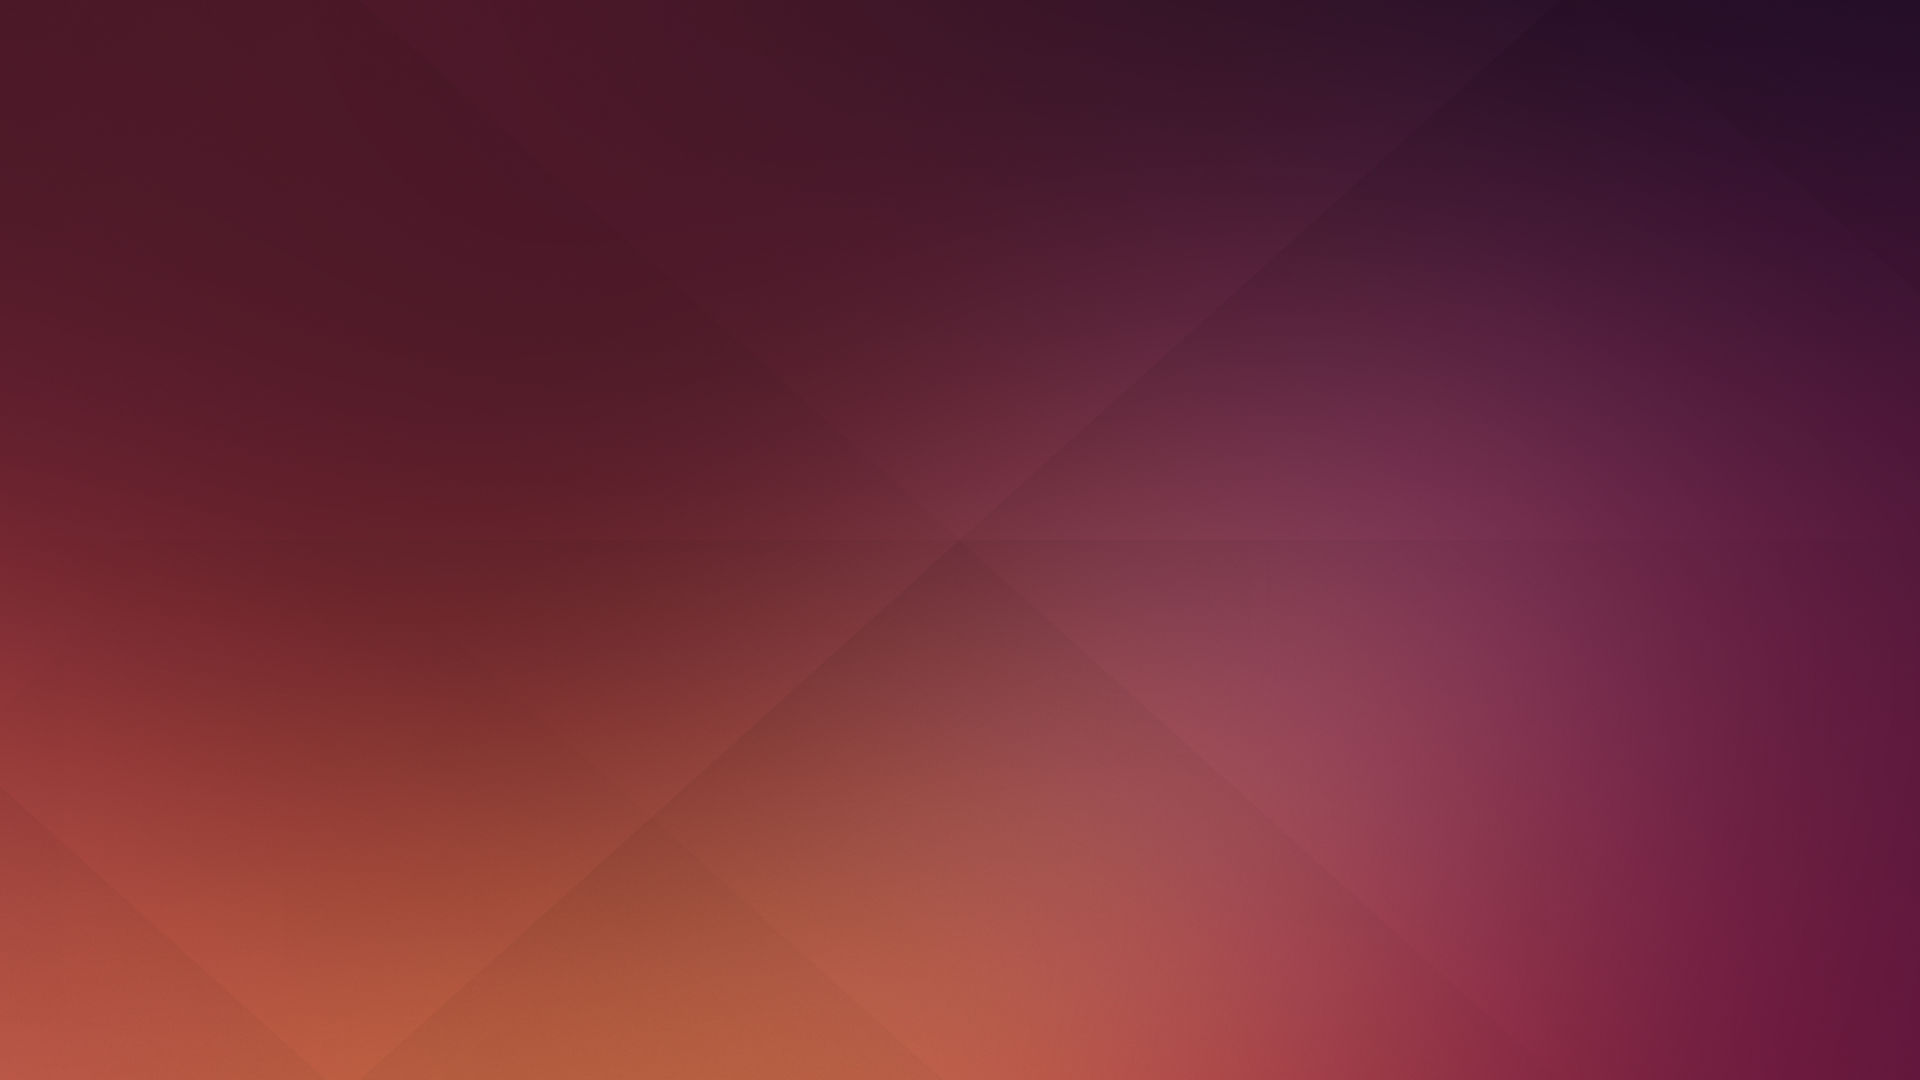 Ubuntu default wallpapers 404 1404 1920x1080 by o l a v on 1920x1080